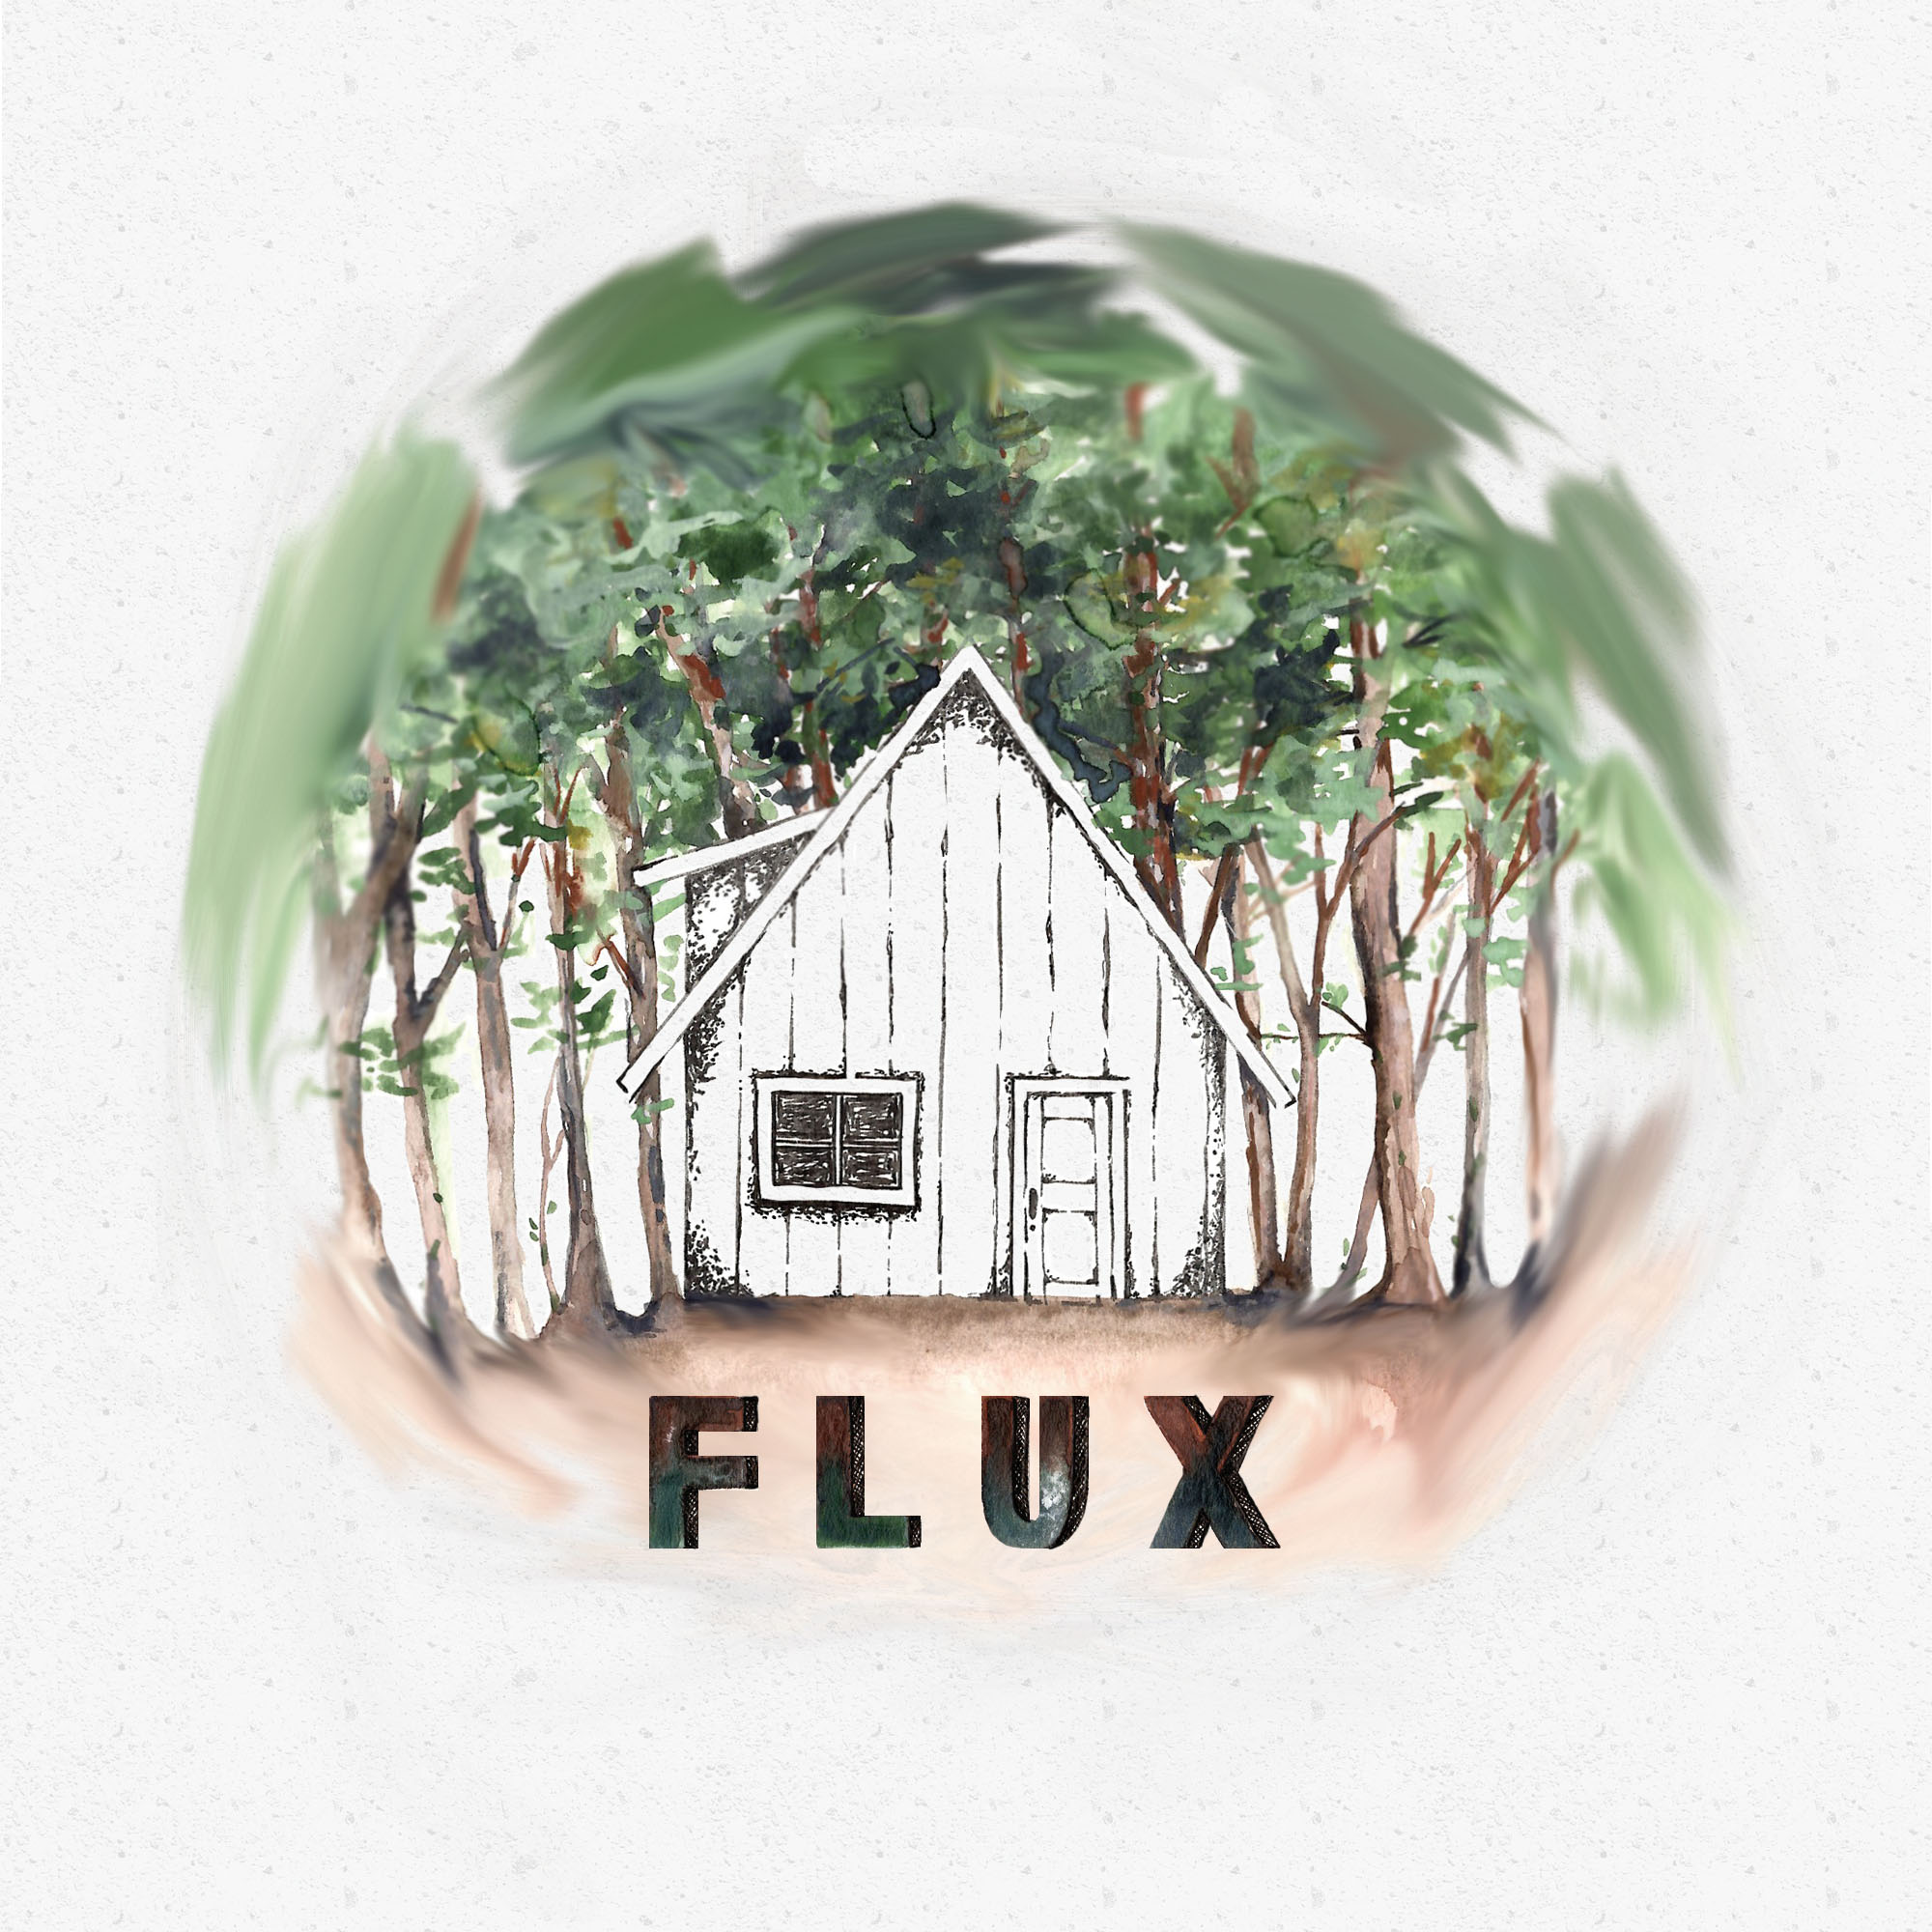 Flux by Zac Brooks and Shawn Williams, film composer